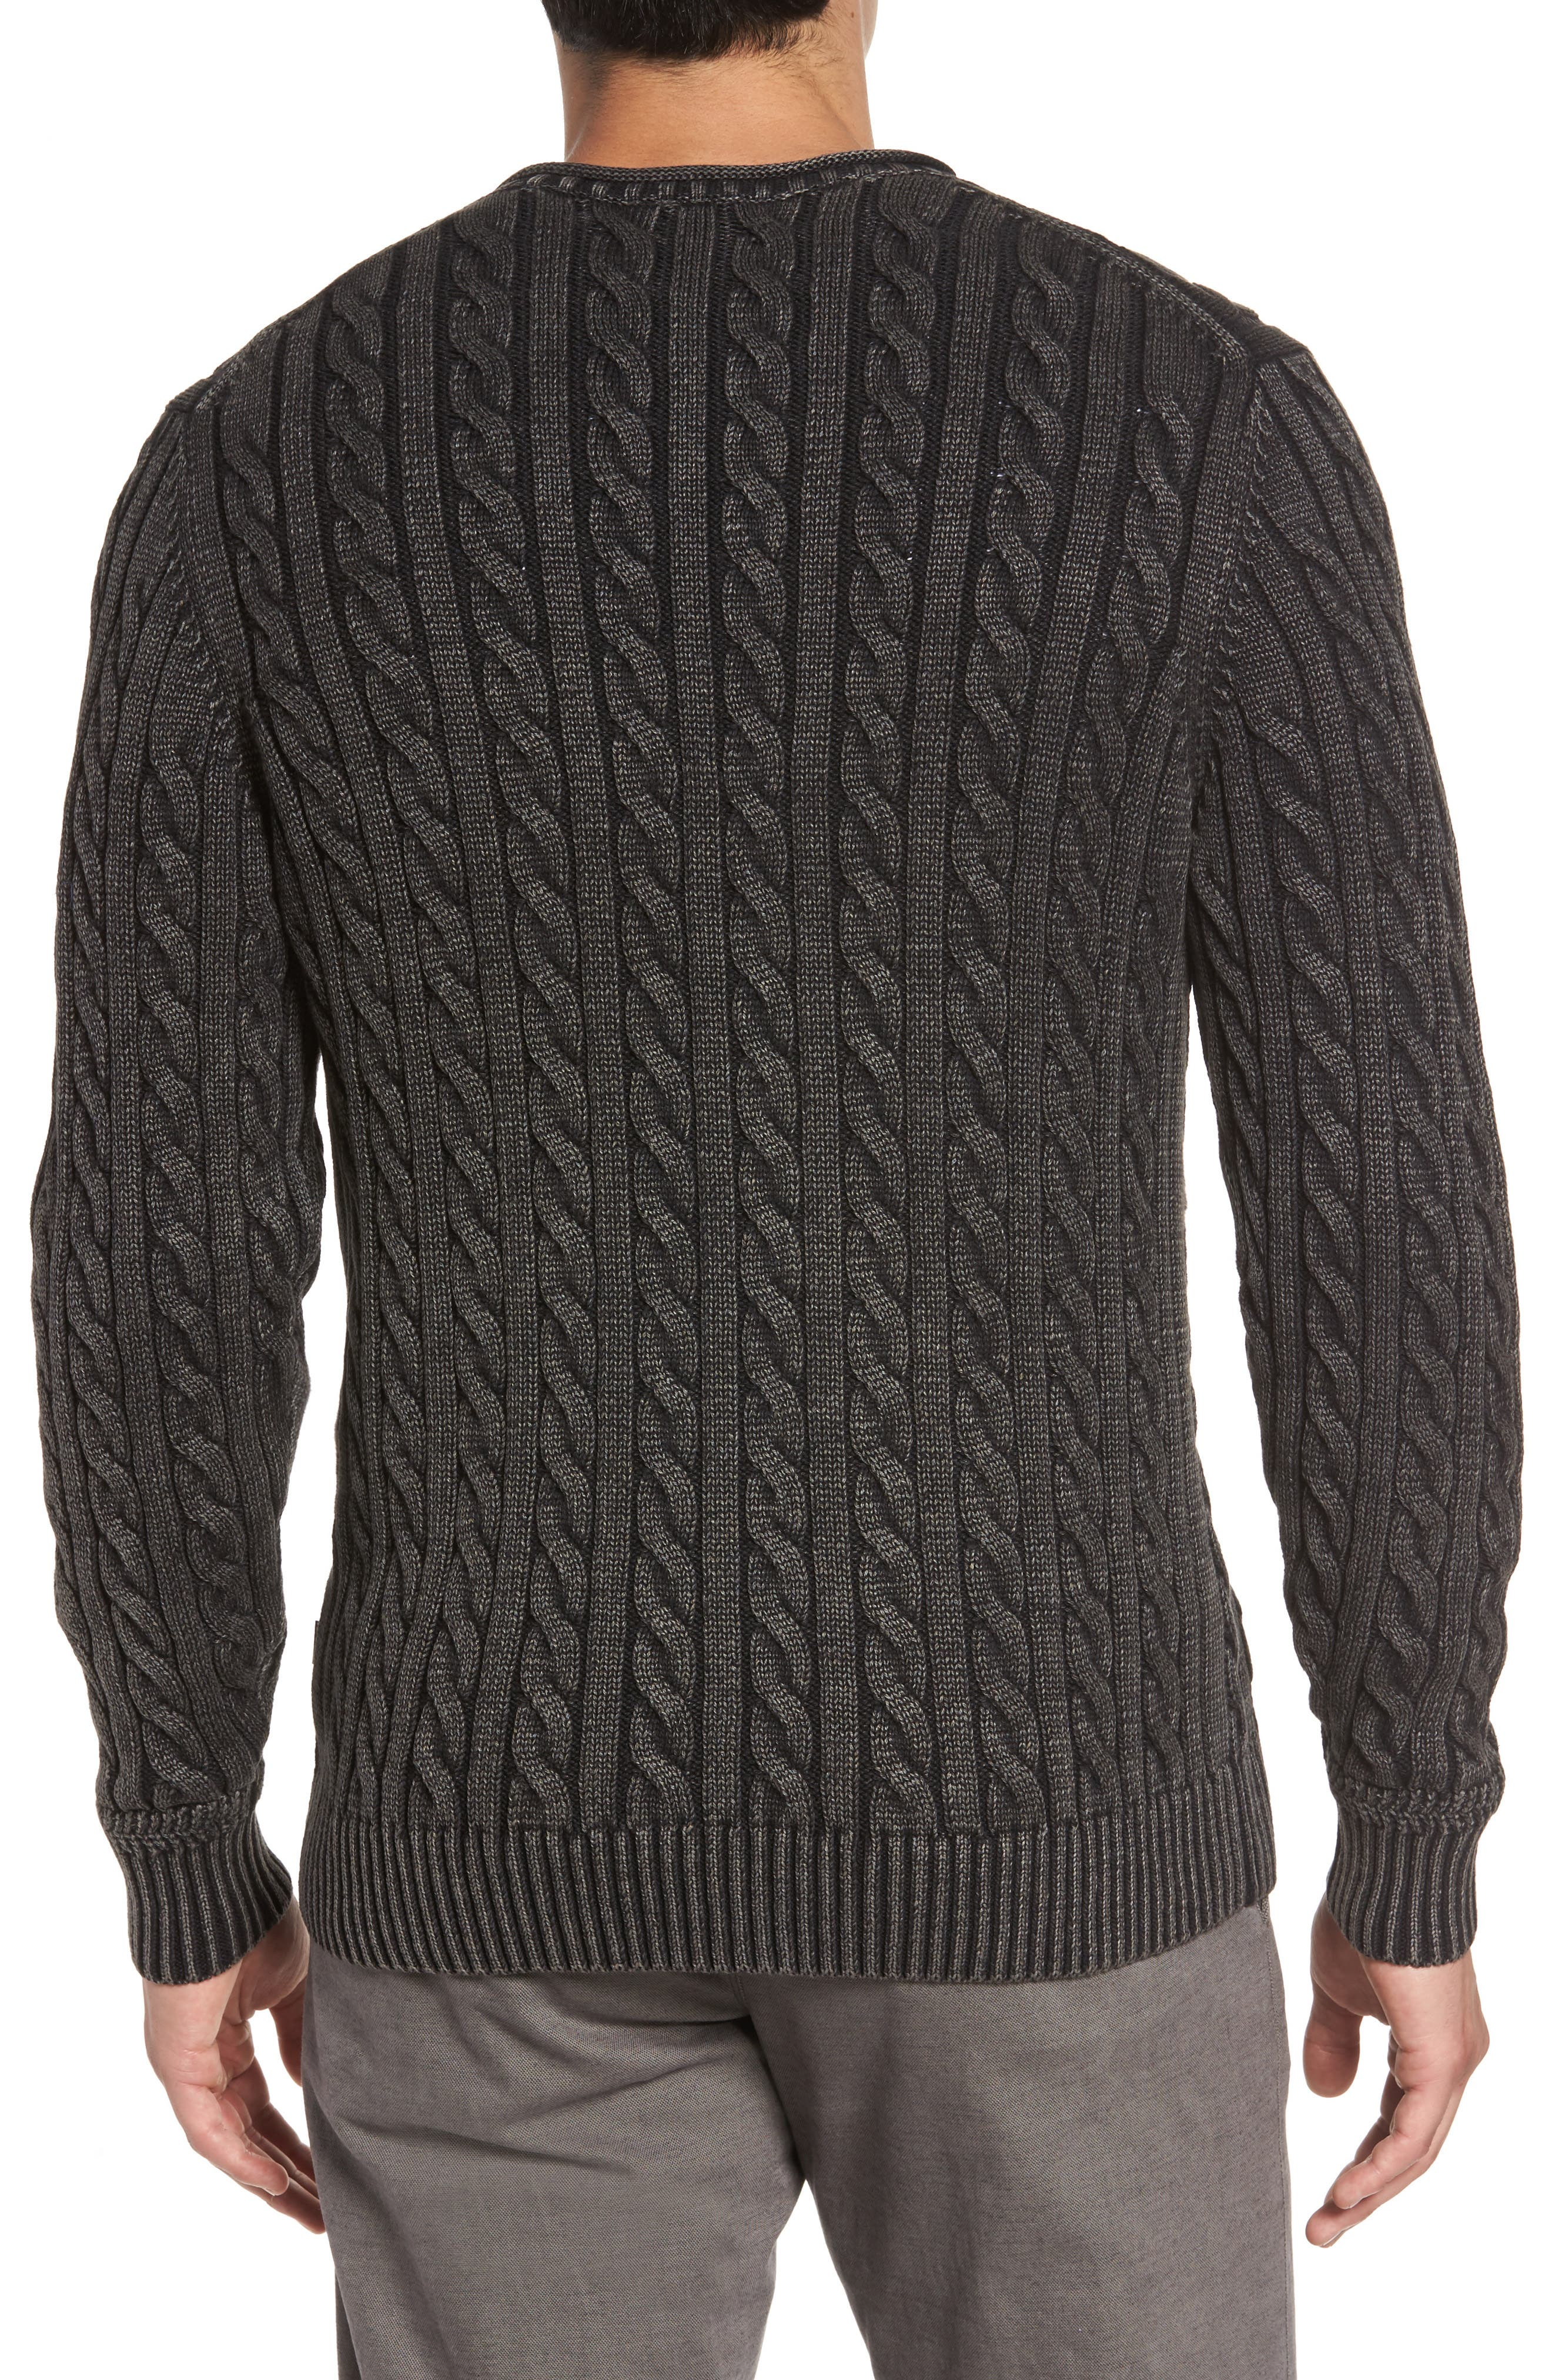 Landray Cable Knit Cotton Sweater,                             Alternate thumbnail 2, color,                             Charcoal